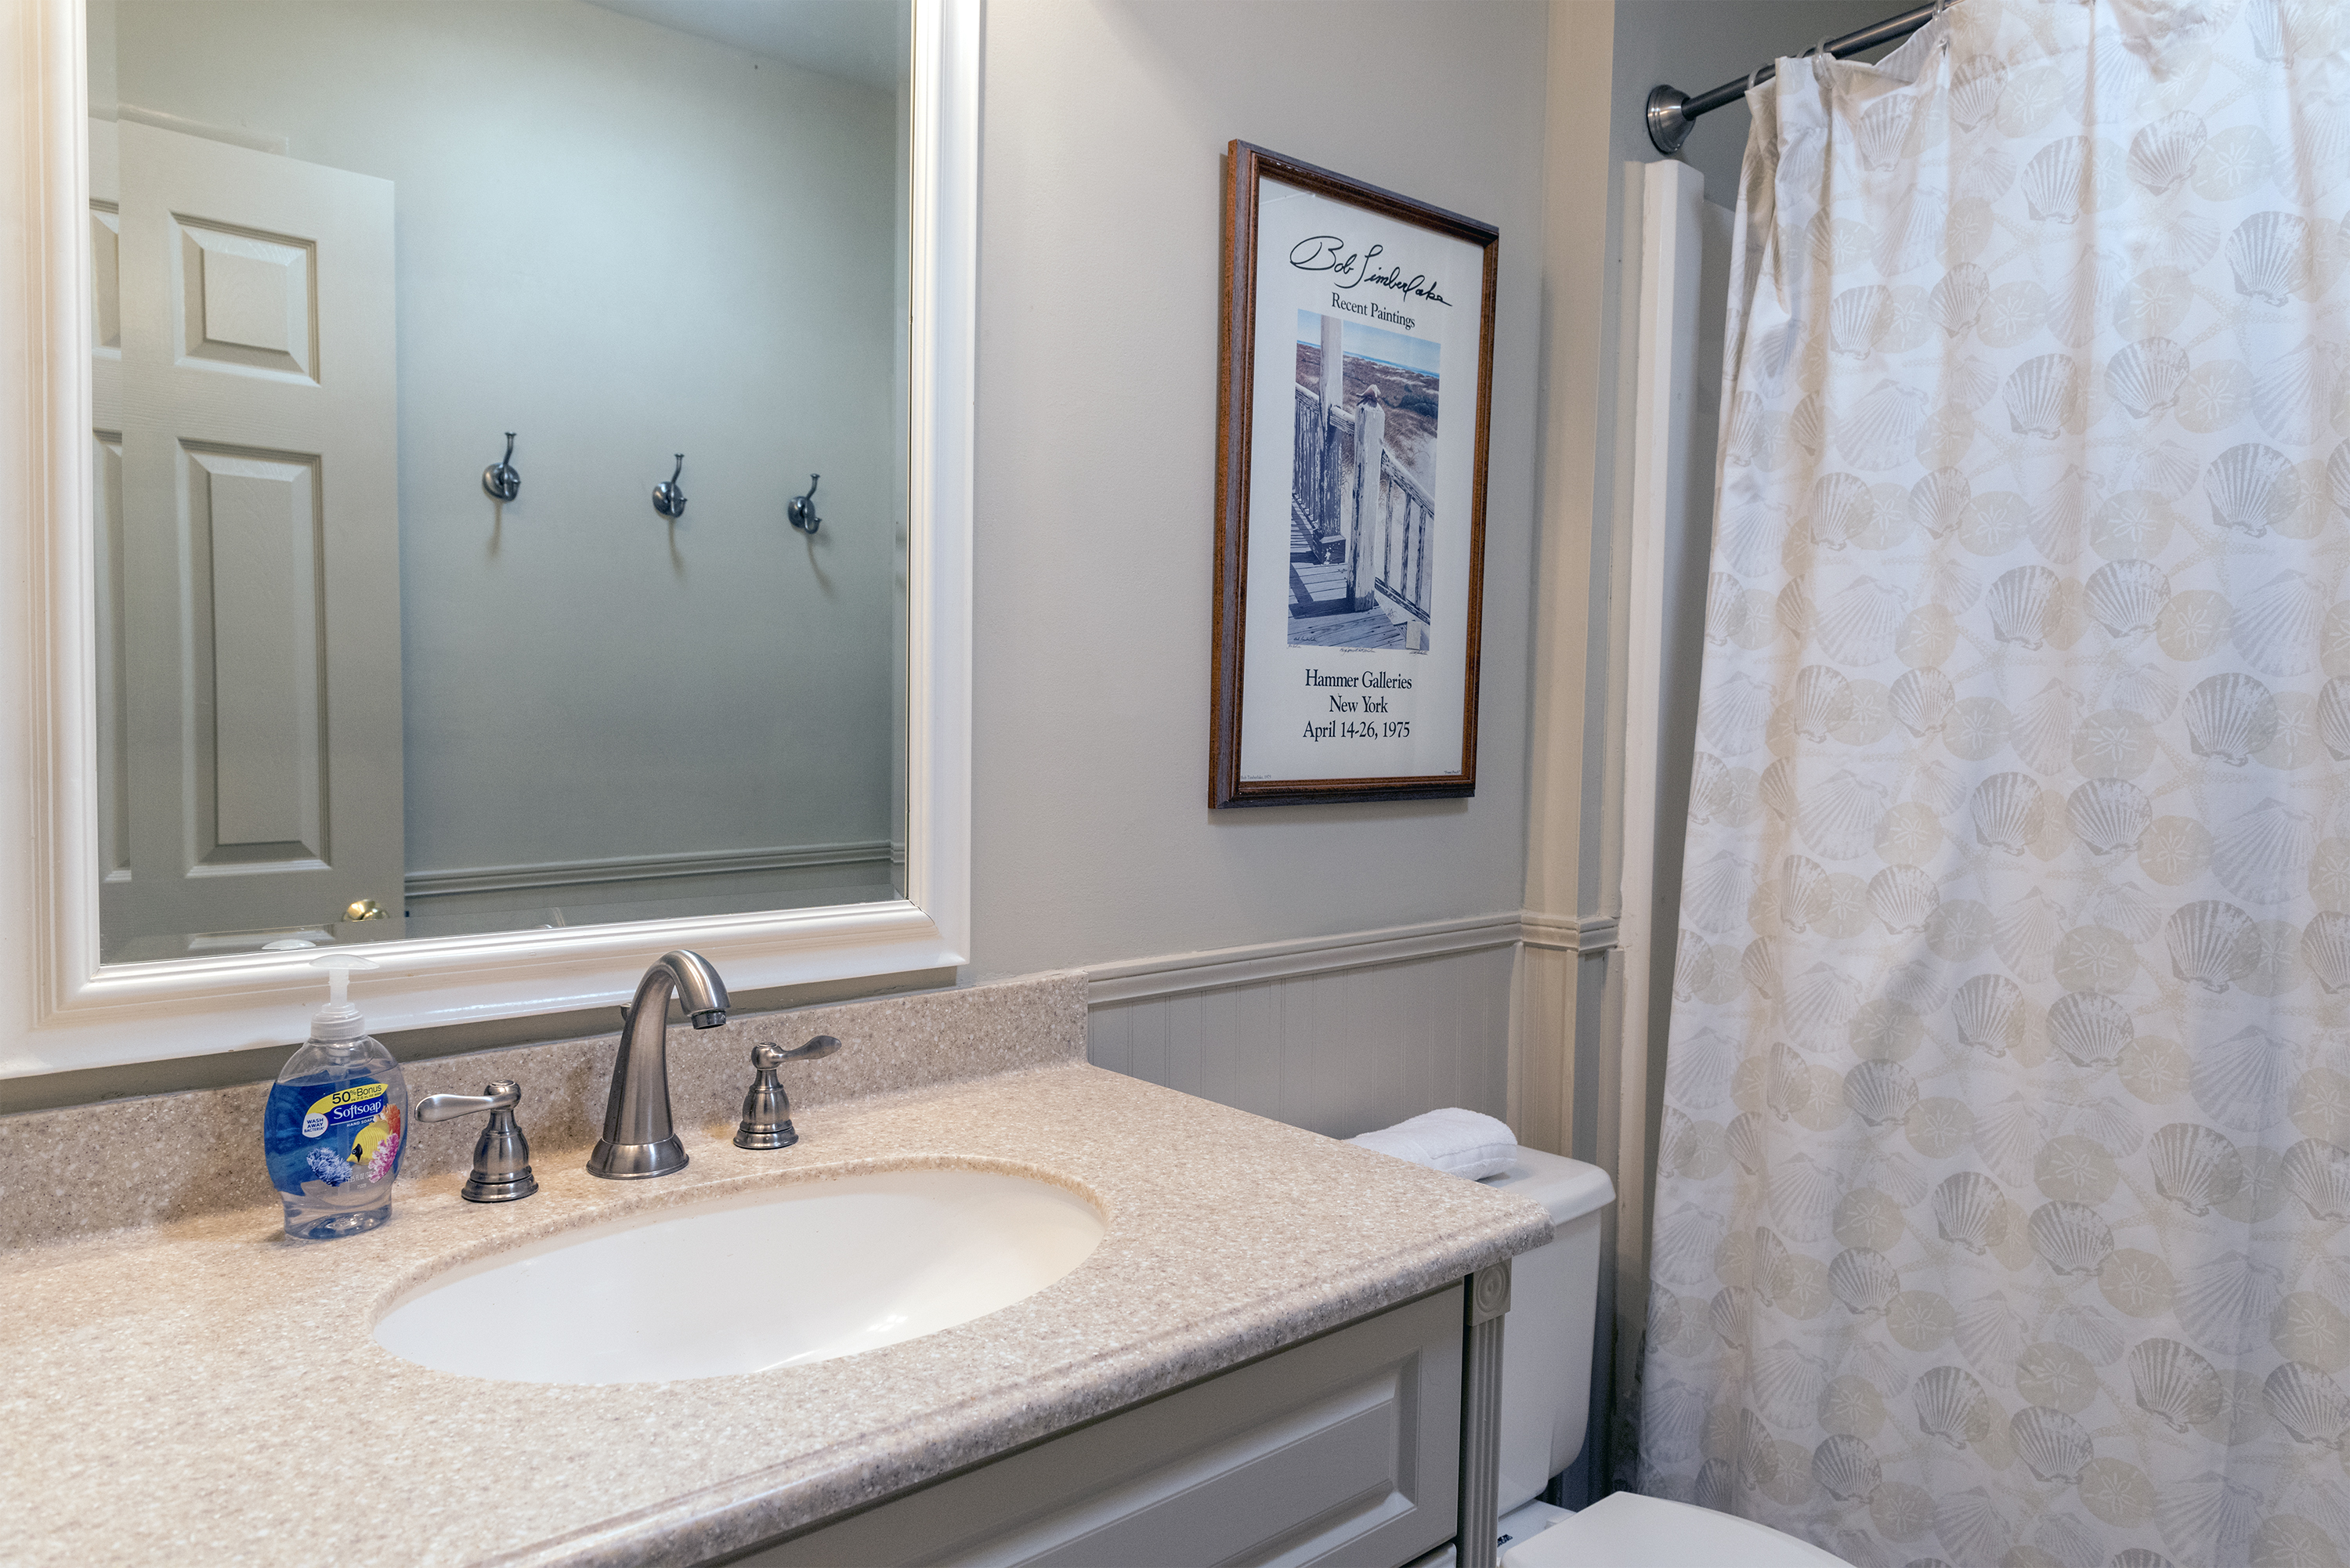 Between the two bedrooms is a full bath. It has a shower tub and has been updated.